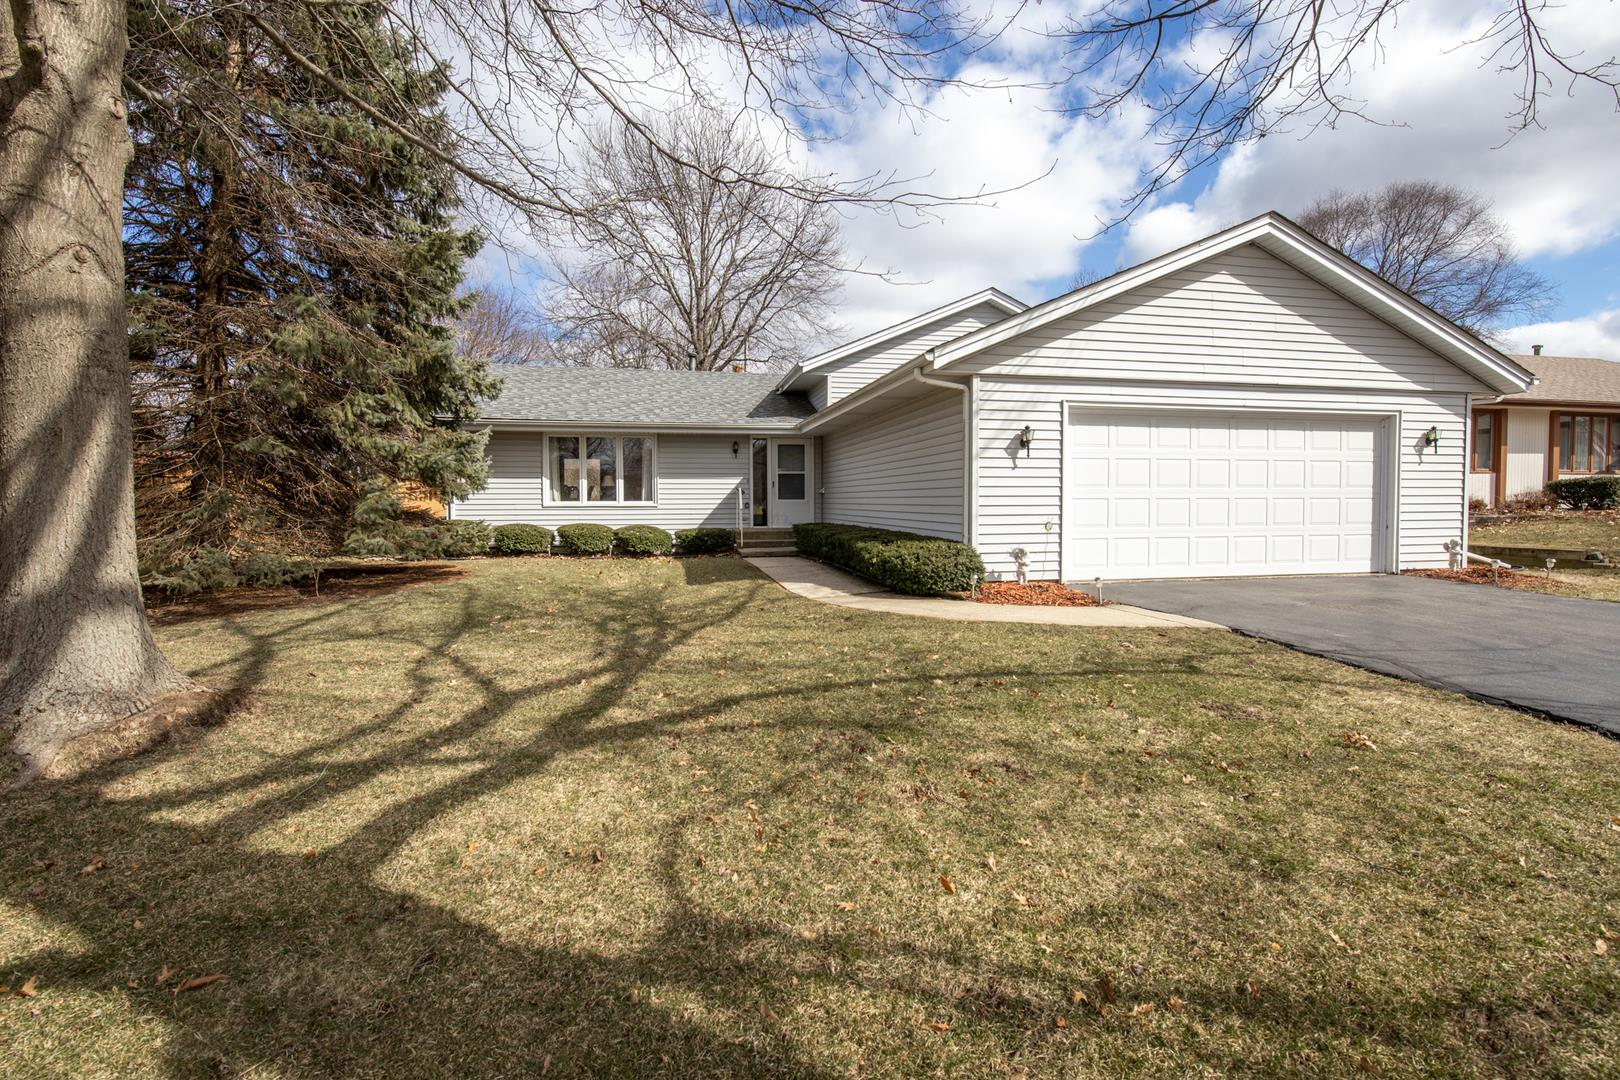 1460 Turnbull Court, Rockford, IL 61108 - #: 10670838